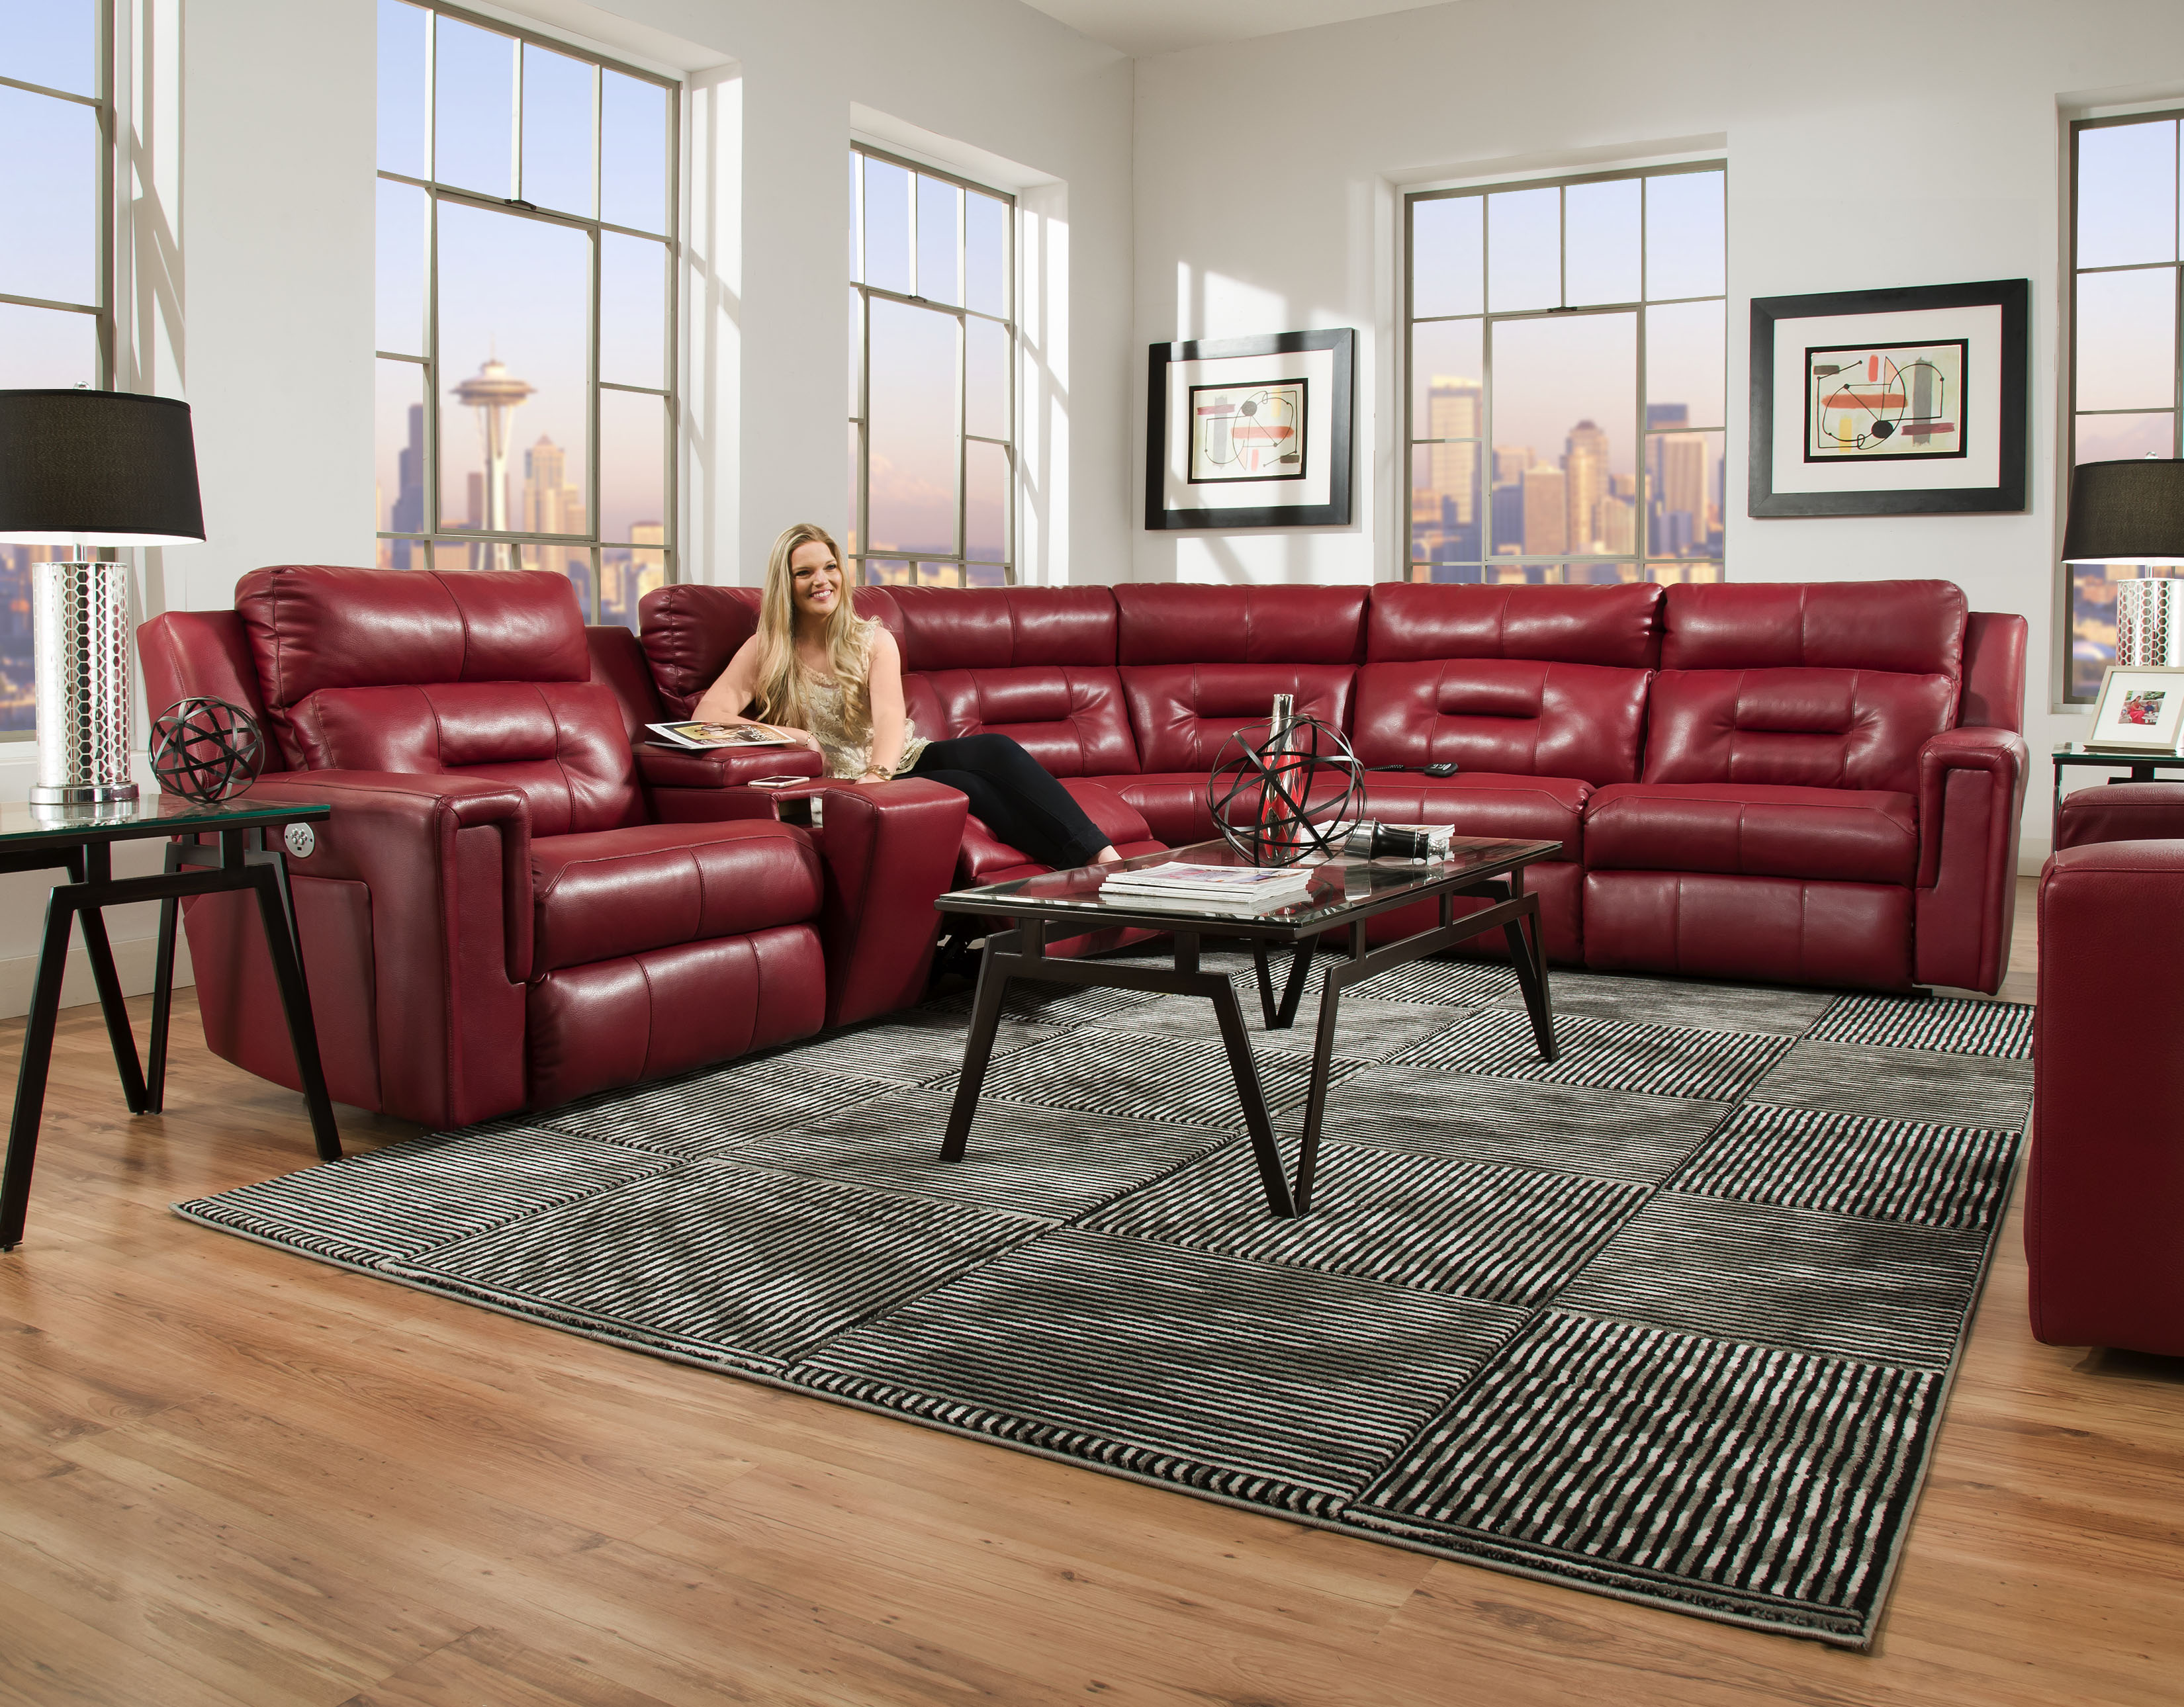 866 Excel Sectional Image